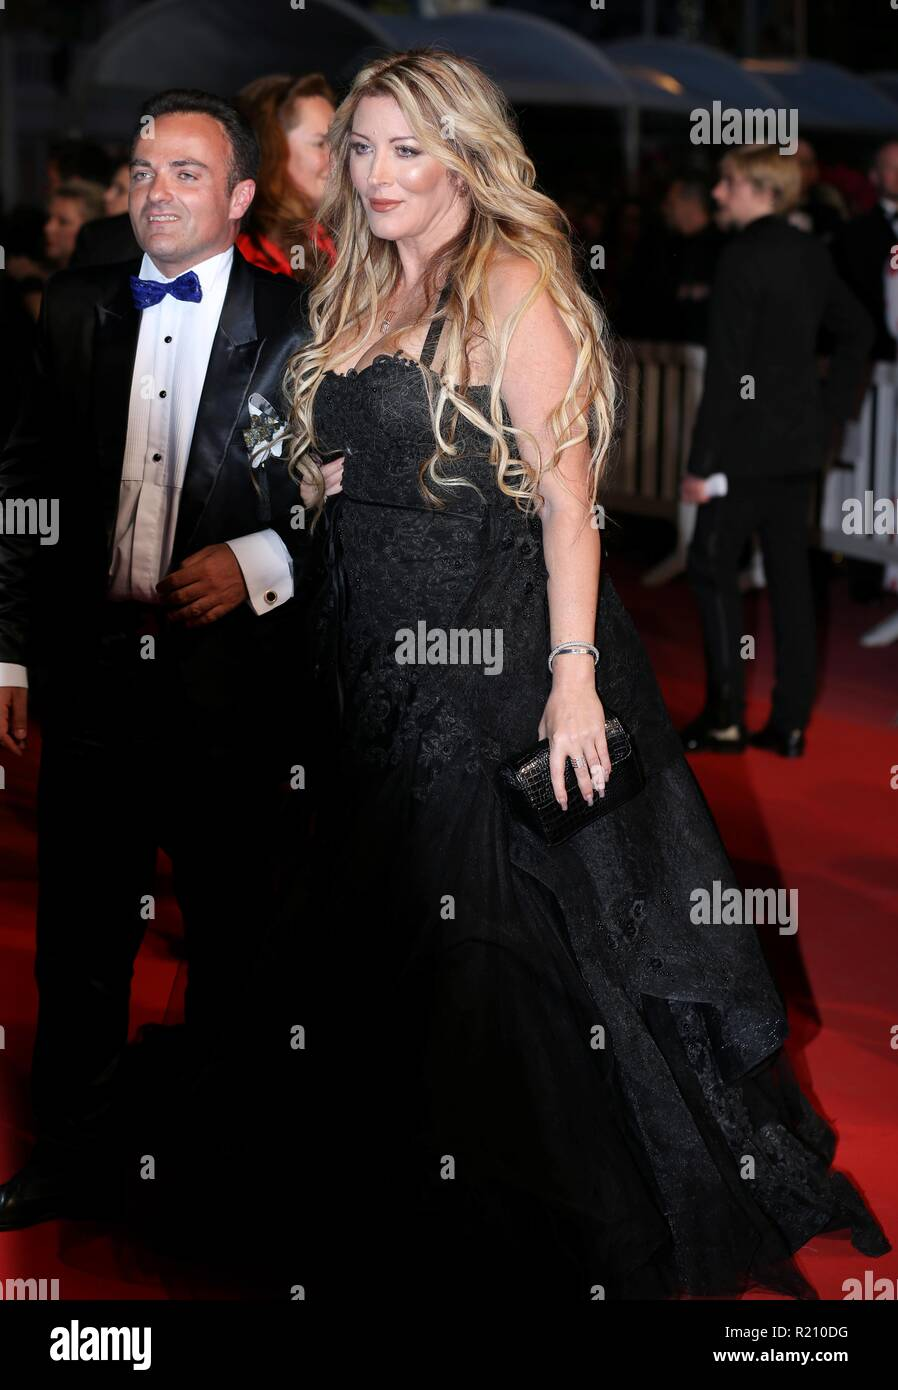 CANNES, FRANCE – MAY 12, 2018: Loana attends the screening of '3 Visages' during the 71st annual Cannes Film Festival - Stock Image